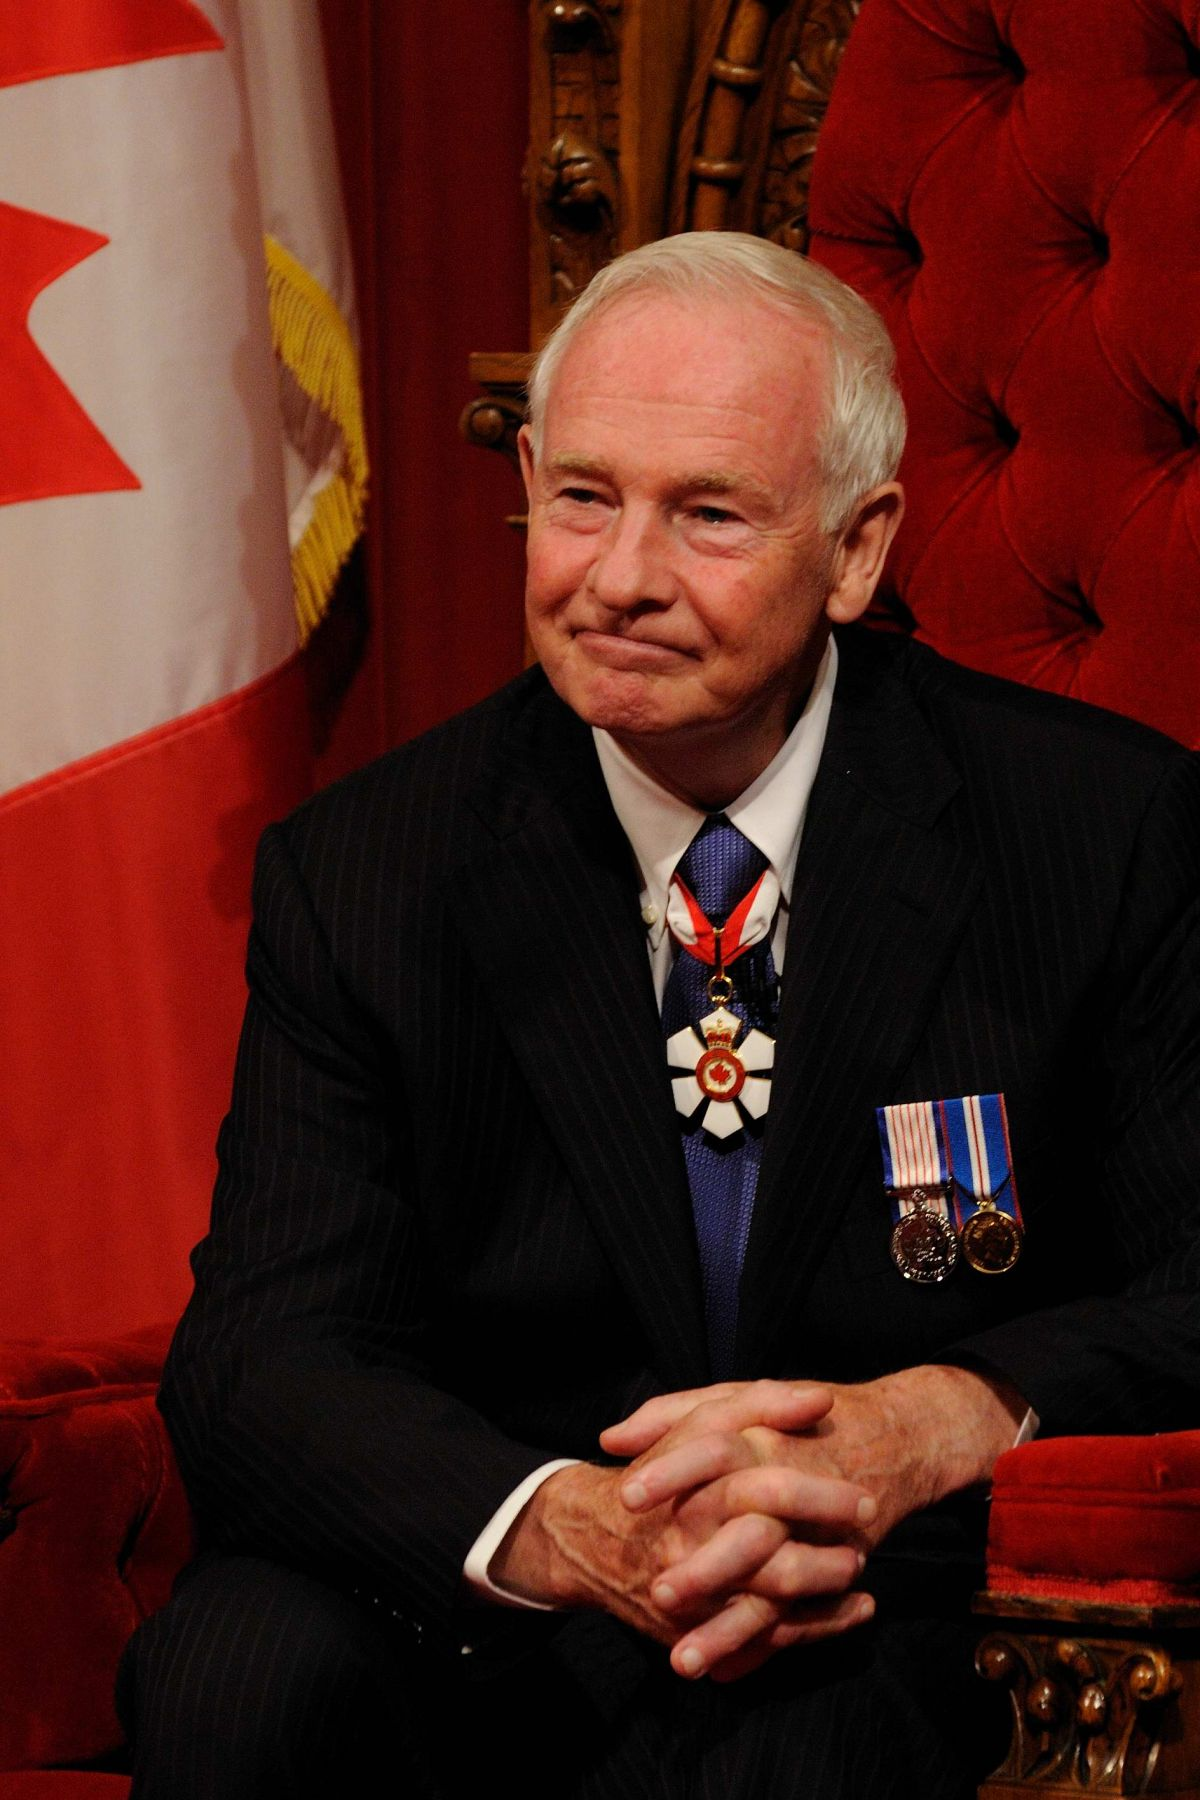 His Excellency David Johnston was born in Sudbury, Ontario, and is married to Mrs. Sharon Johnston. They have five adult daughters and seven grandchildren.